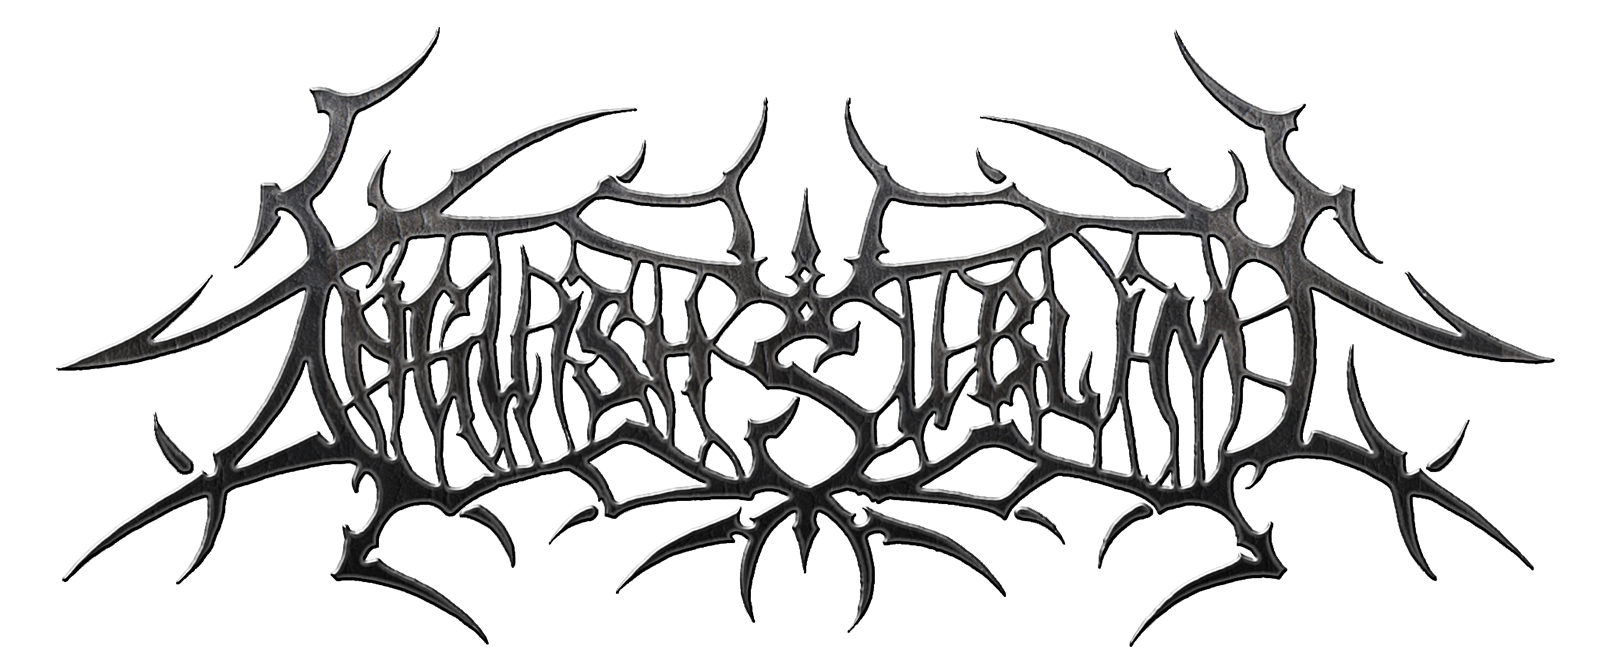 Sublime drawing band. European metal channel